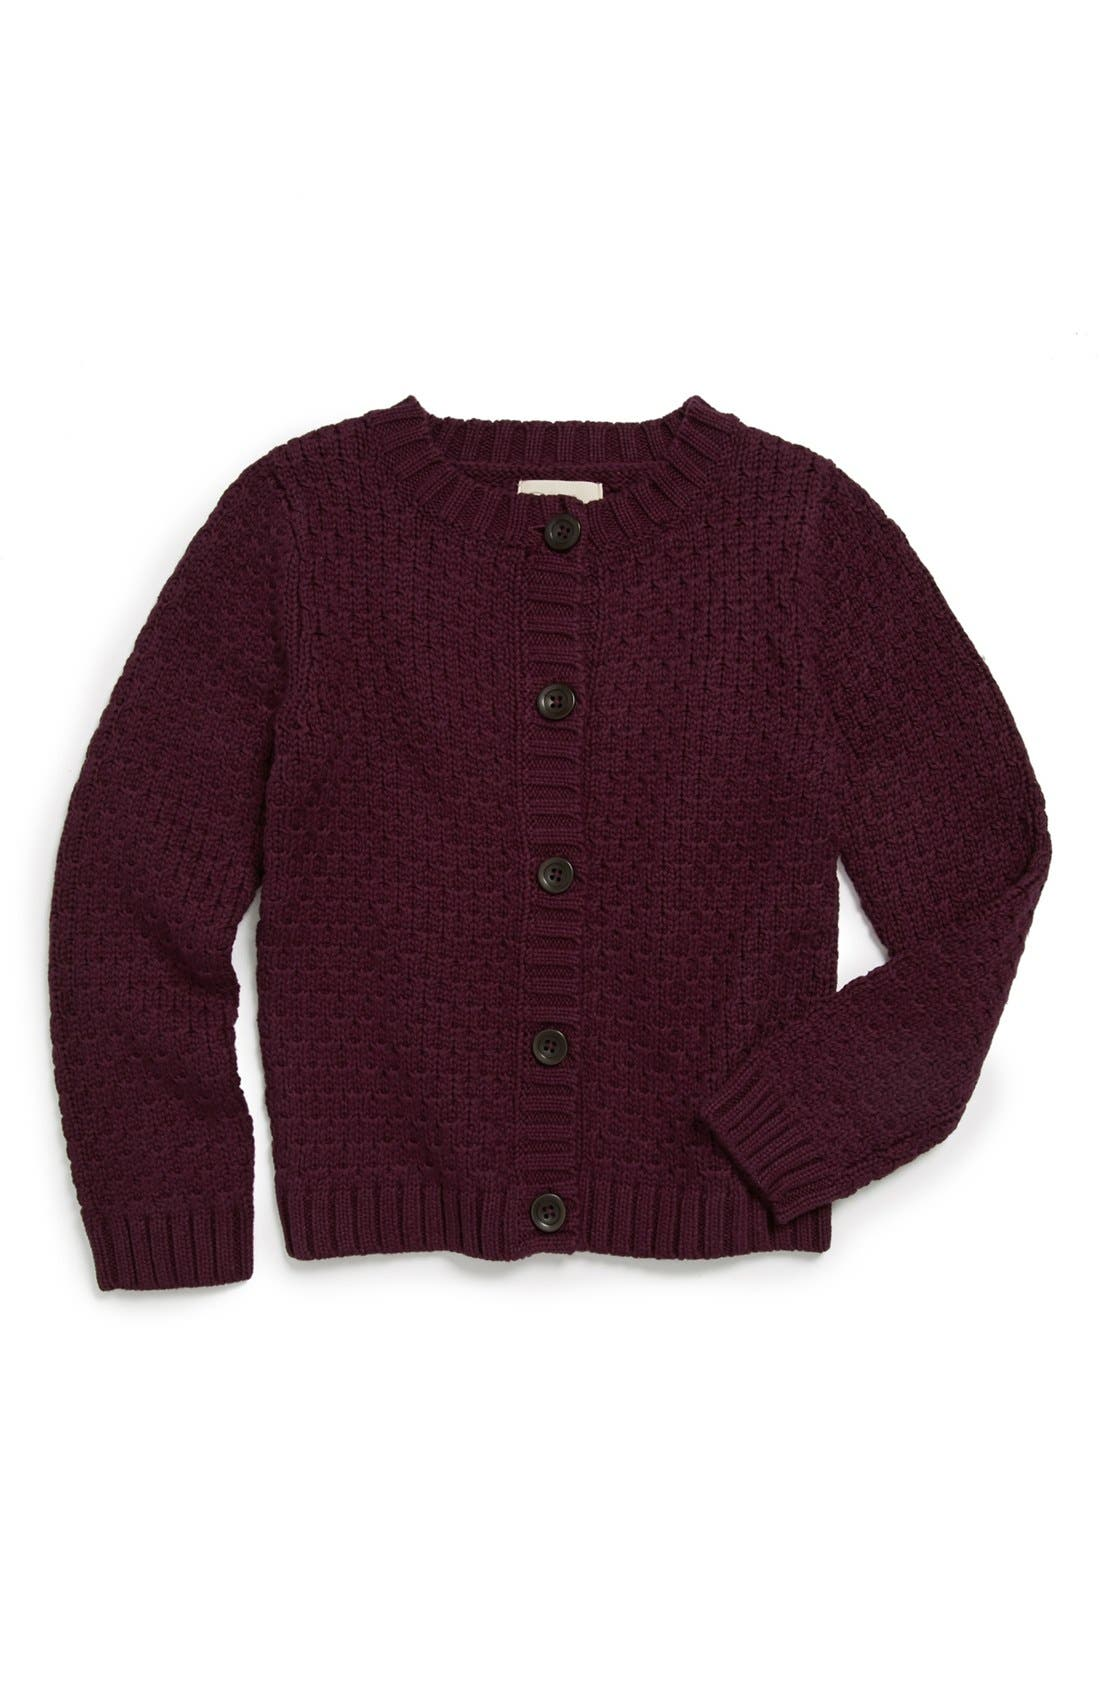 Main Image - Peek 'Simone' Cardigan (Toddler Girls, Little Girls & Big Girls)